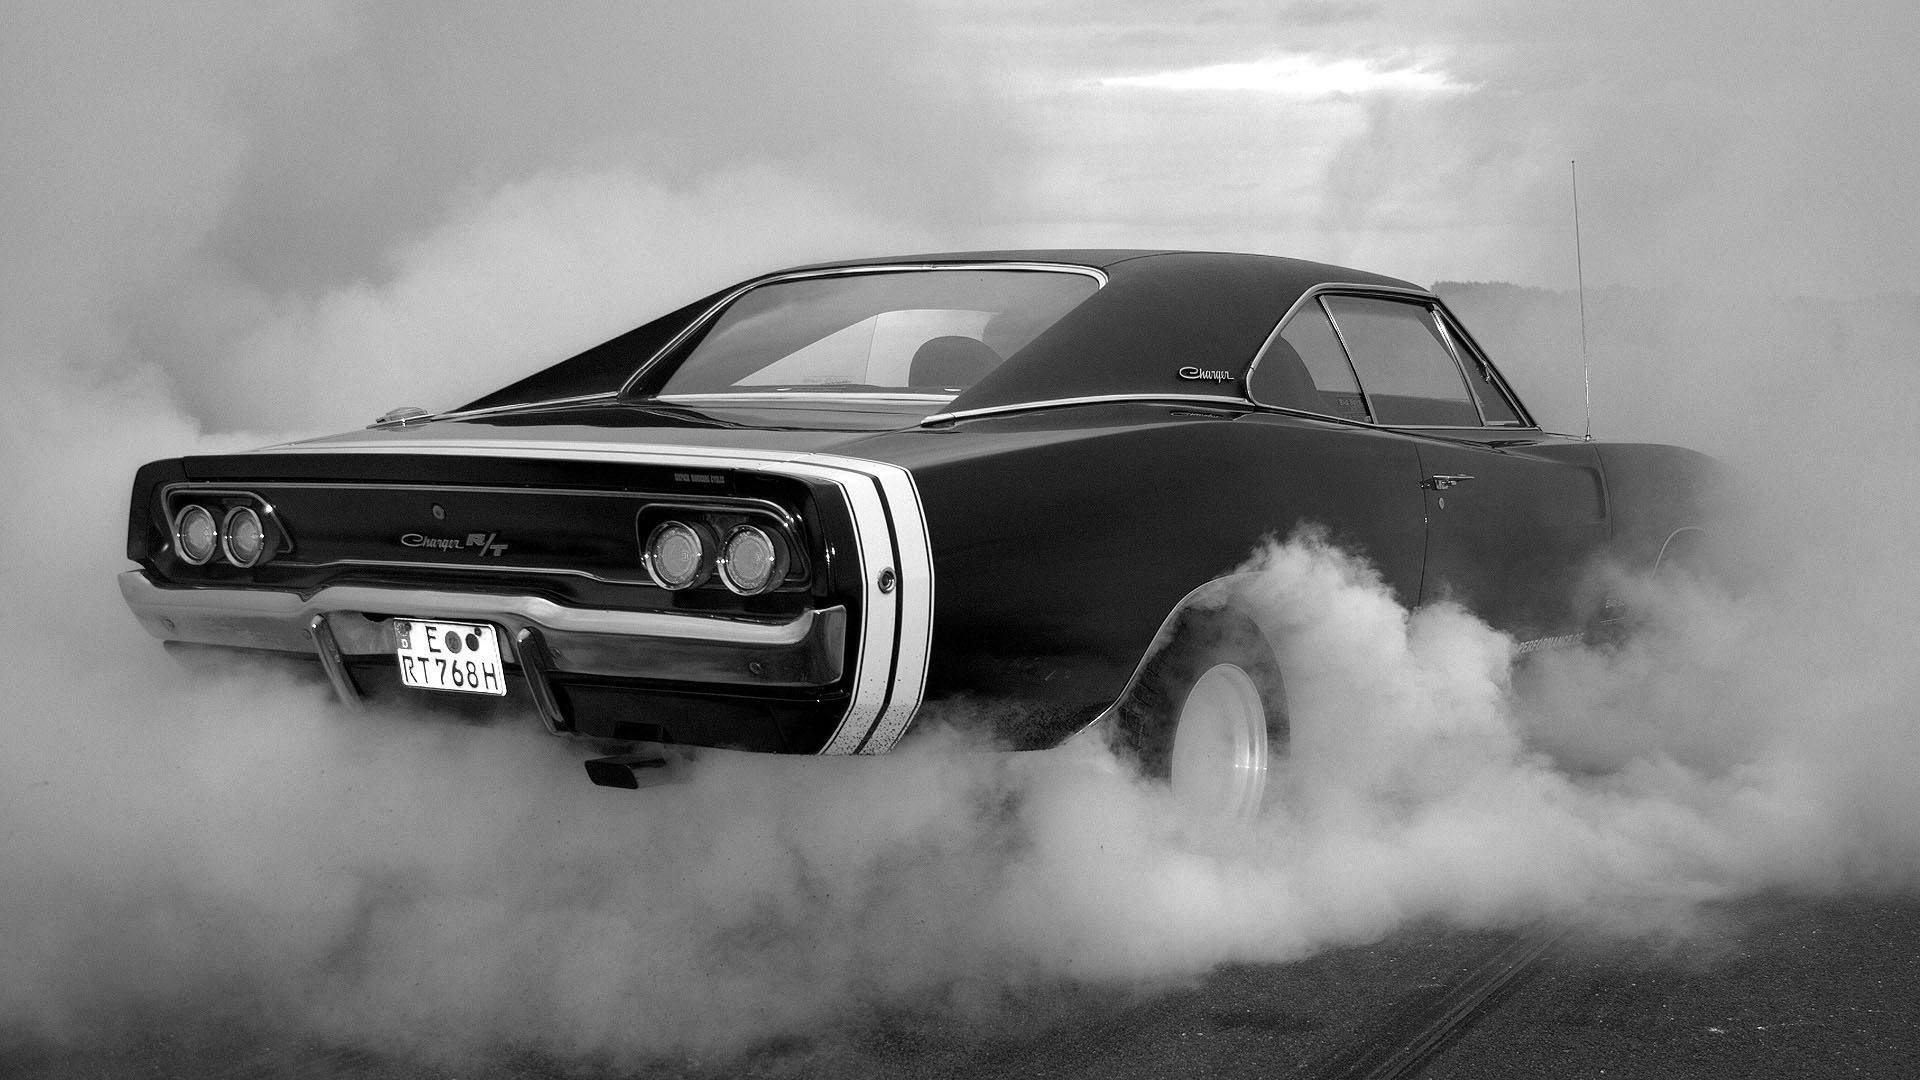 Muscle car burnout wallpaper 1920x1080 HQ WALLPAPER   35283 1920x1080